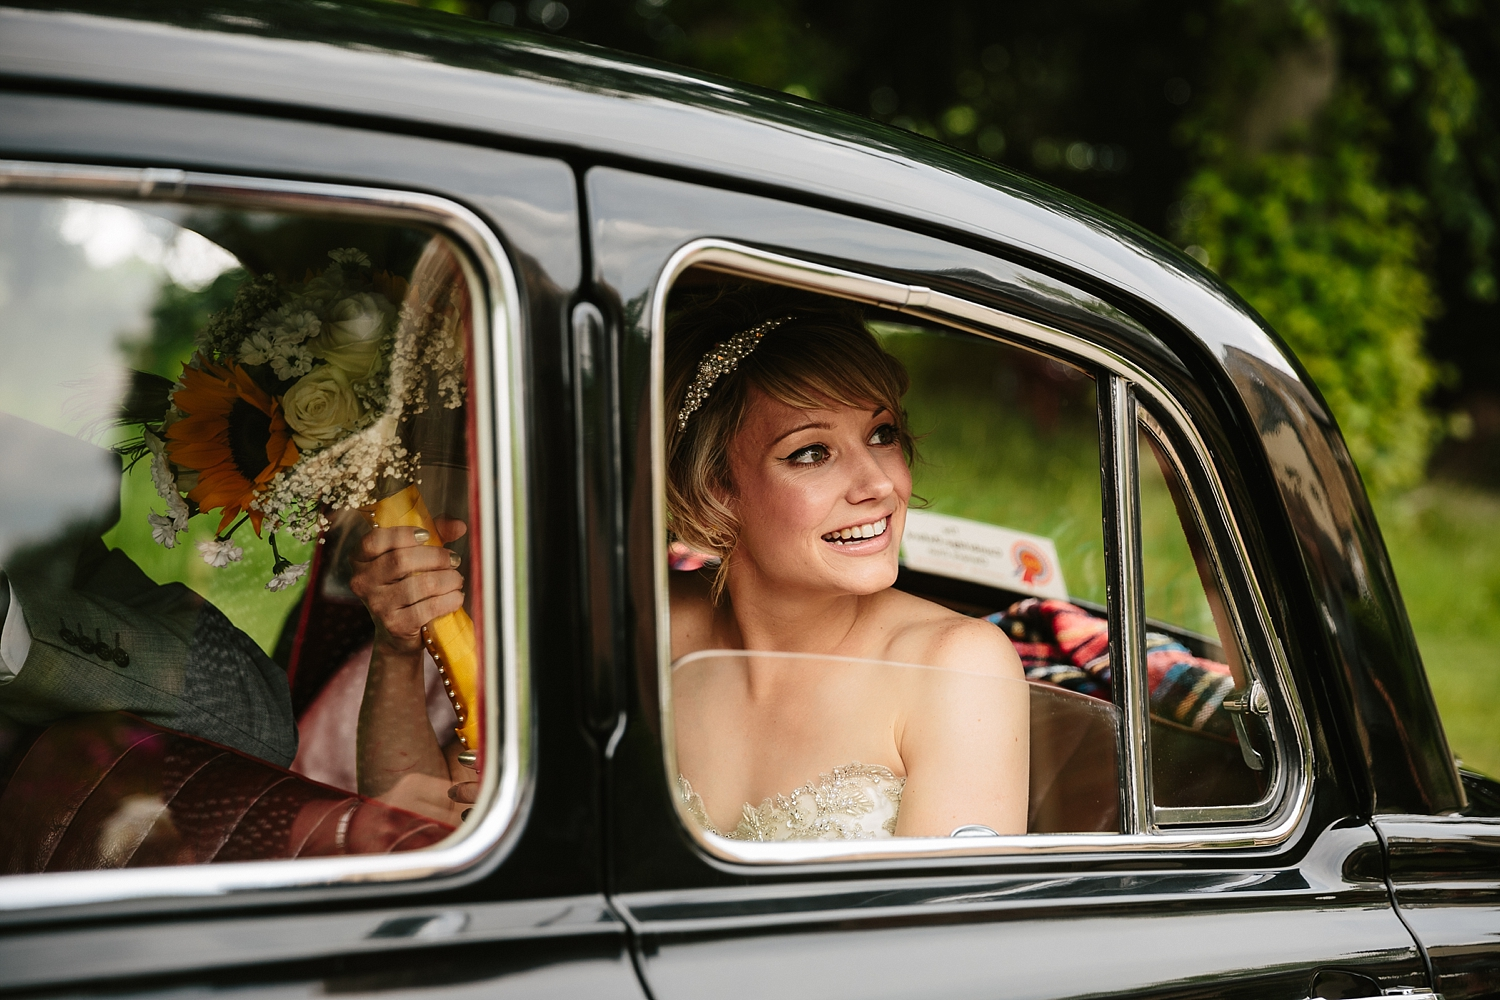 Natlie-Matthew-yorkshire-natural-relaxed-fun-documentary-reportage-candid-wedding-photography-photographer-Derby-Nottingham-Derbyshire-Nottinghamshire-Leicestershire-Lincolnshire-East-Midlands-35.jpg